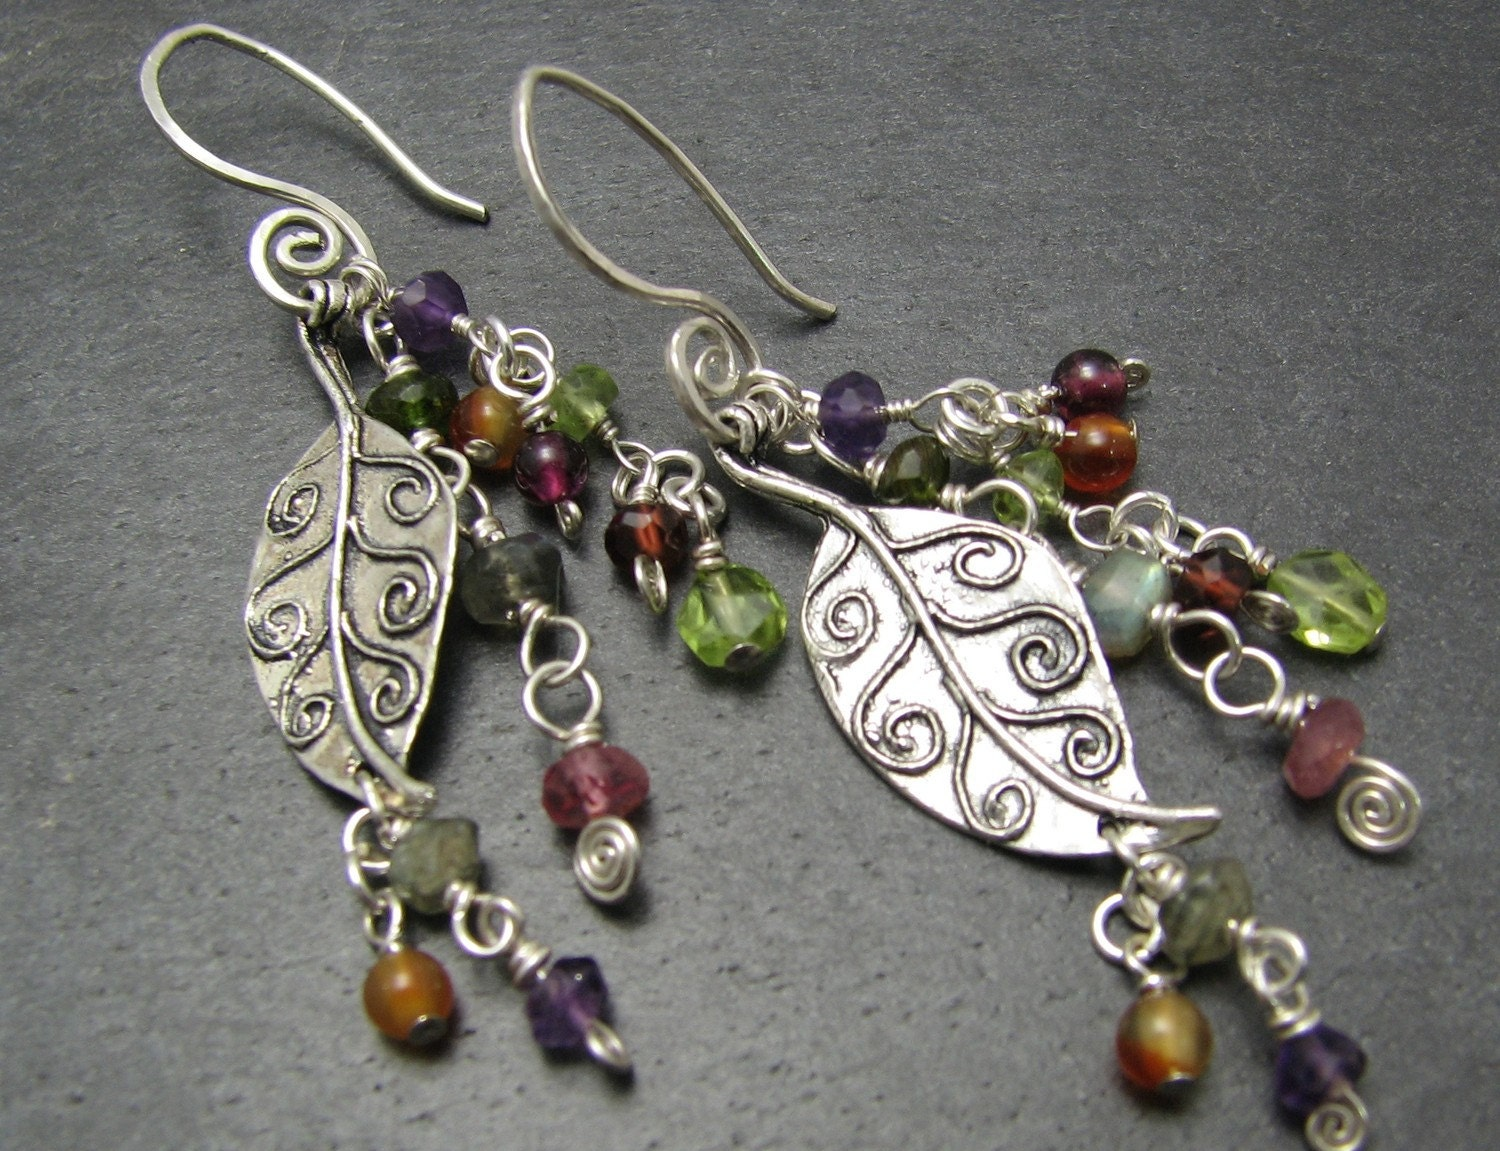 Falling leaves sterling earrings with tiny tourmaline, peridot, amethyst, labradorite, garnet, carnelian gemstones